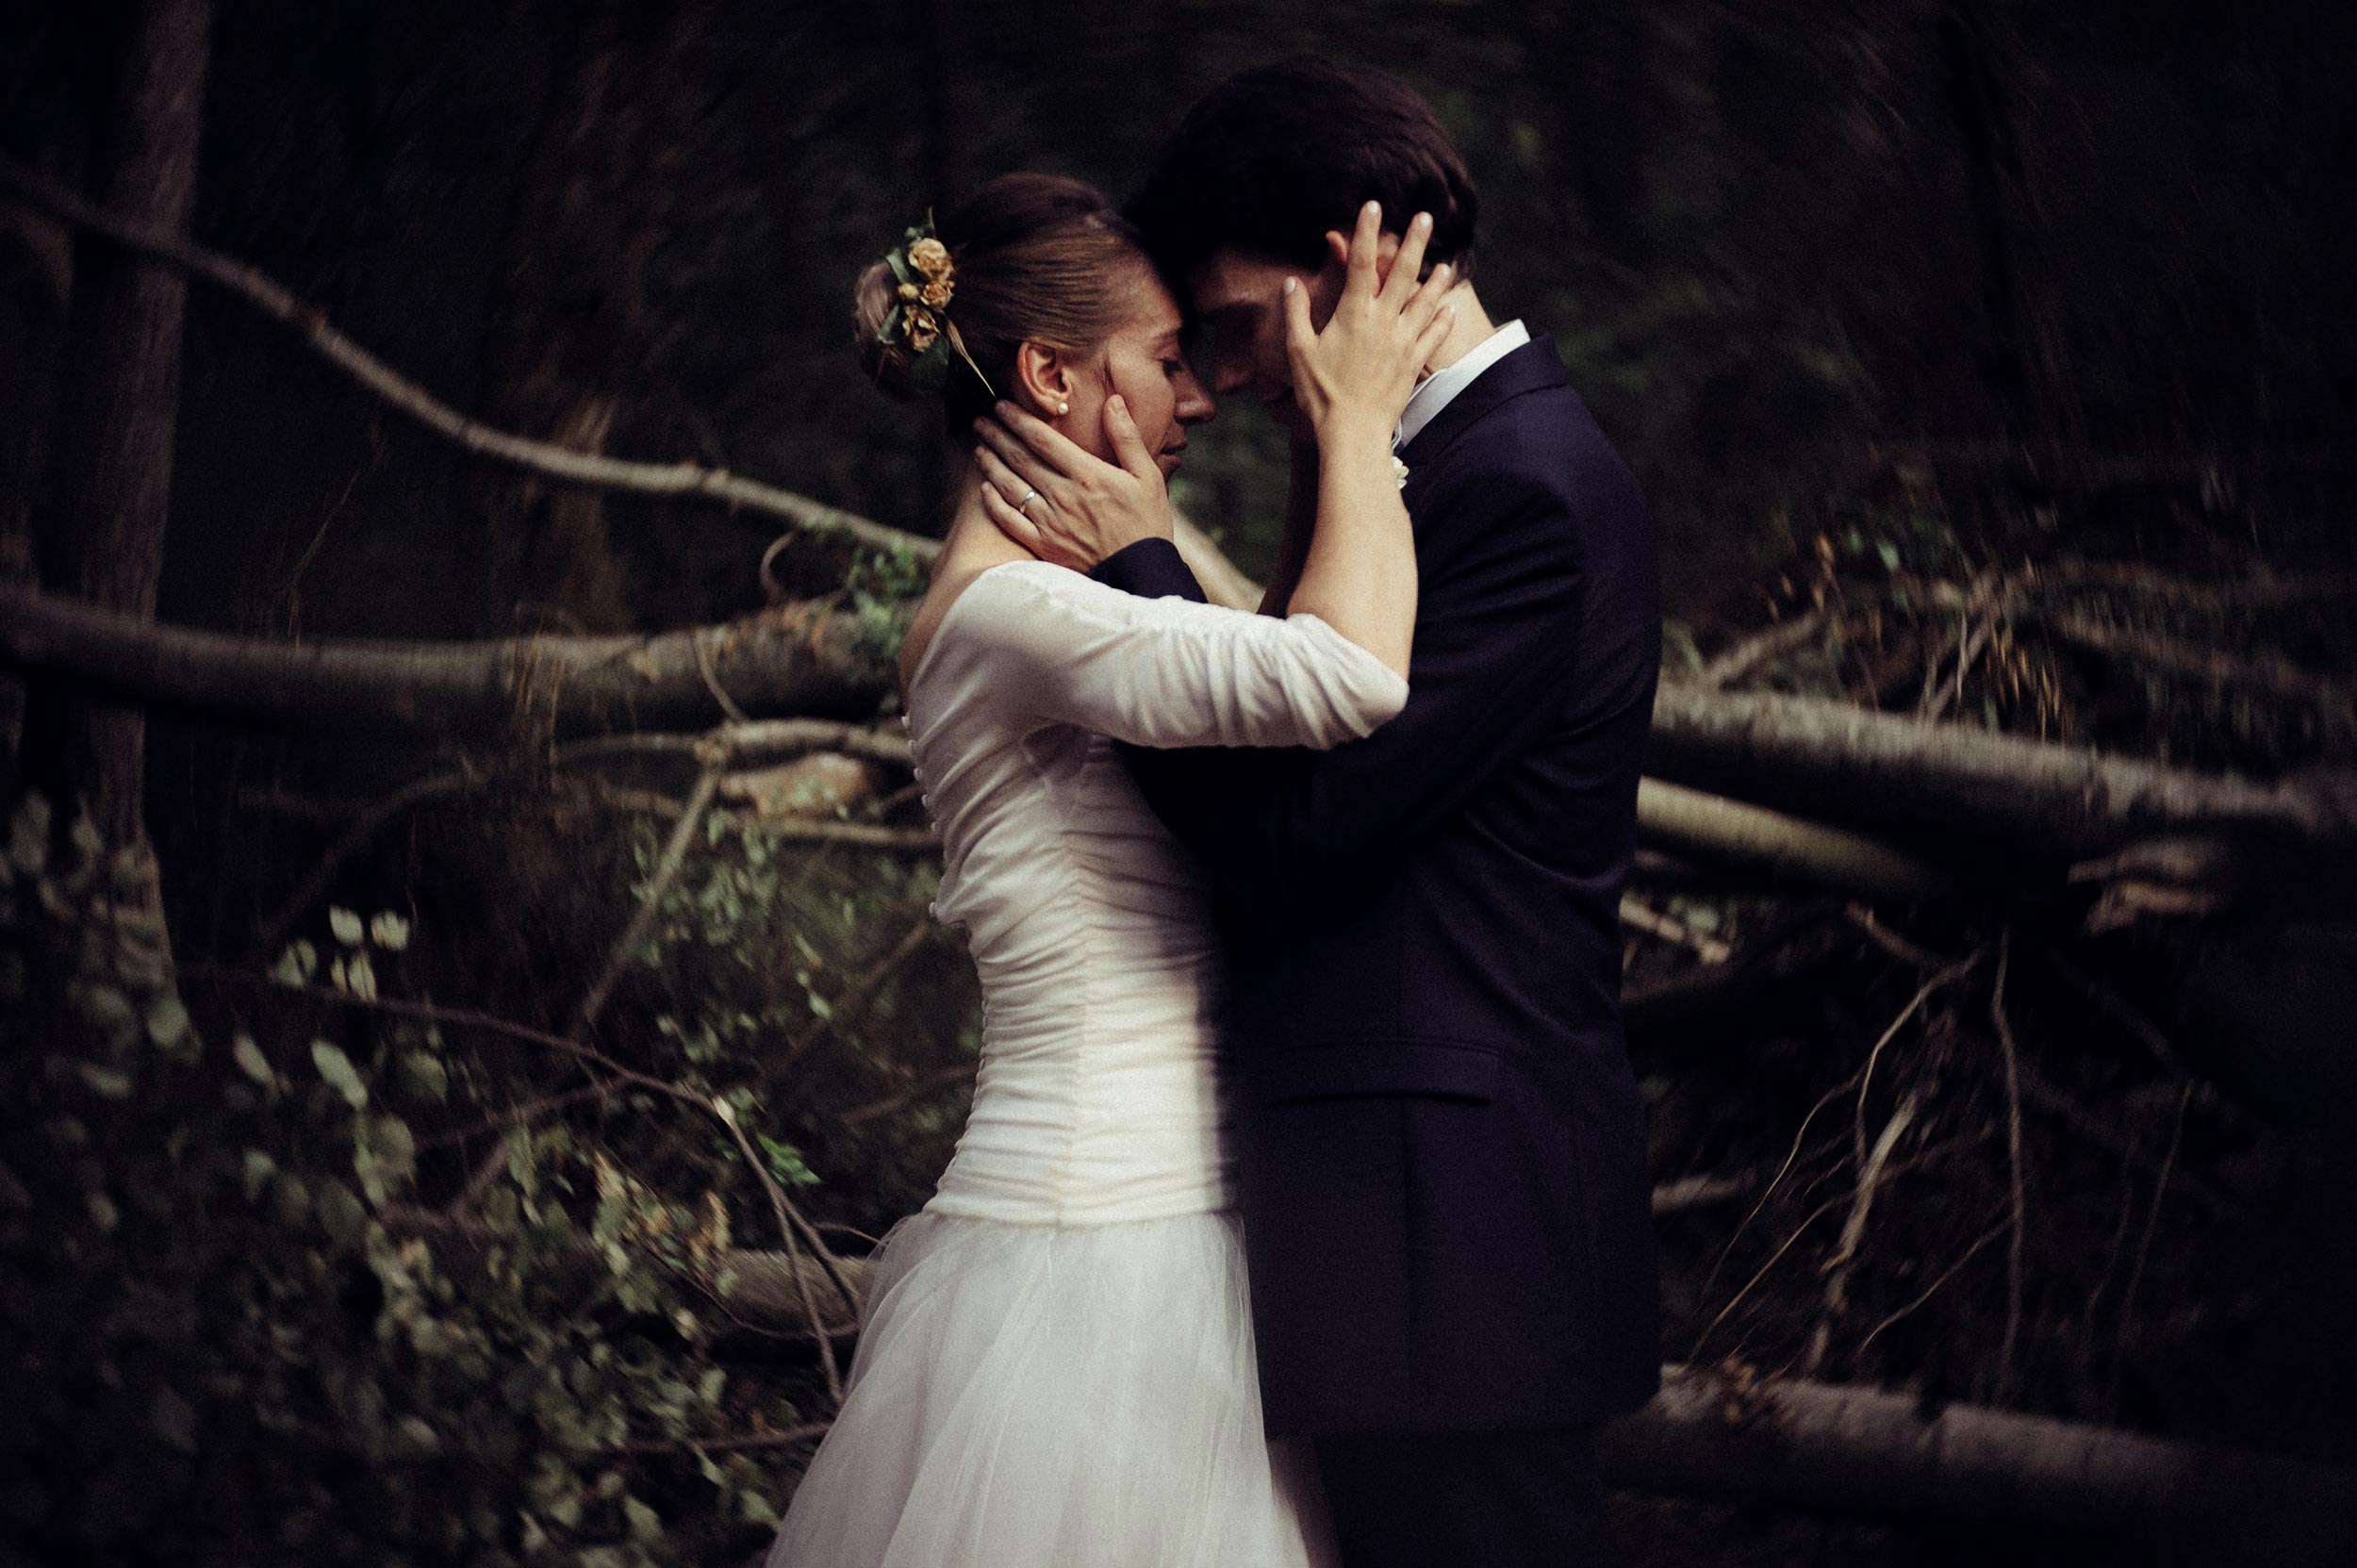 romantic-orange-teal-bride-and-groom-portrait-in-the-woods-looks-like-film.jpg